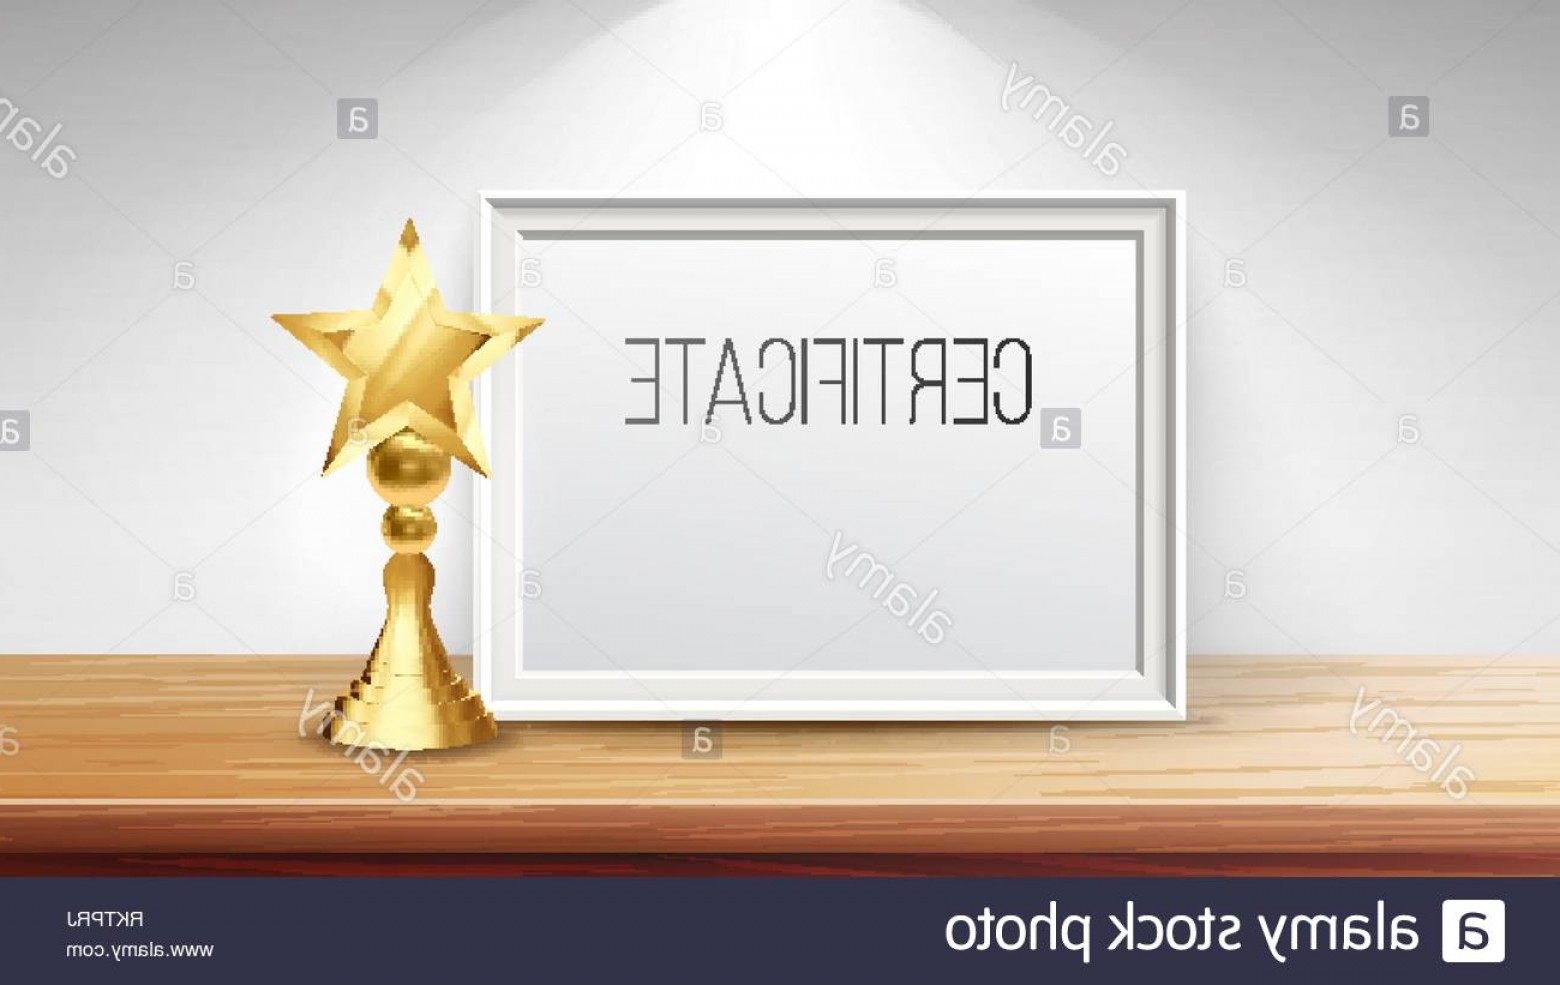 Standing Diploma Vector: Certificate Diploma With Golden Cup Vector Print Blank Business Graduation A Frame Display Stand D Realistic Illustration Image